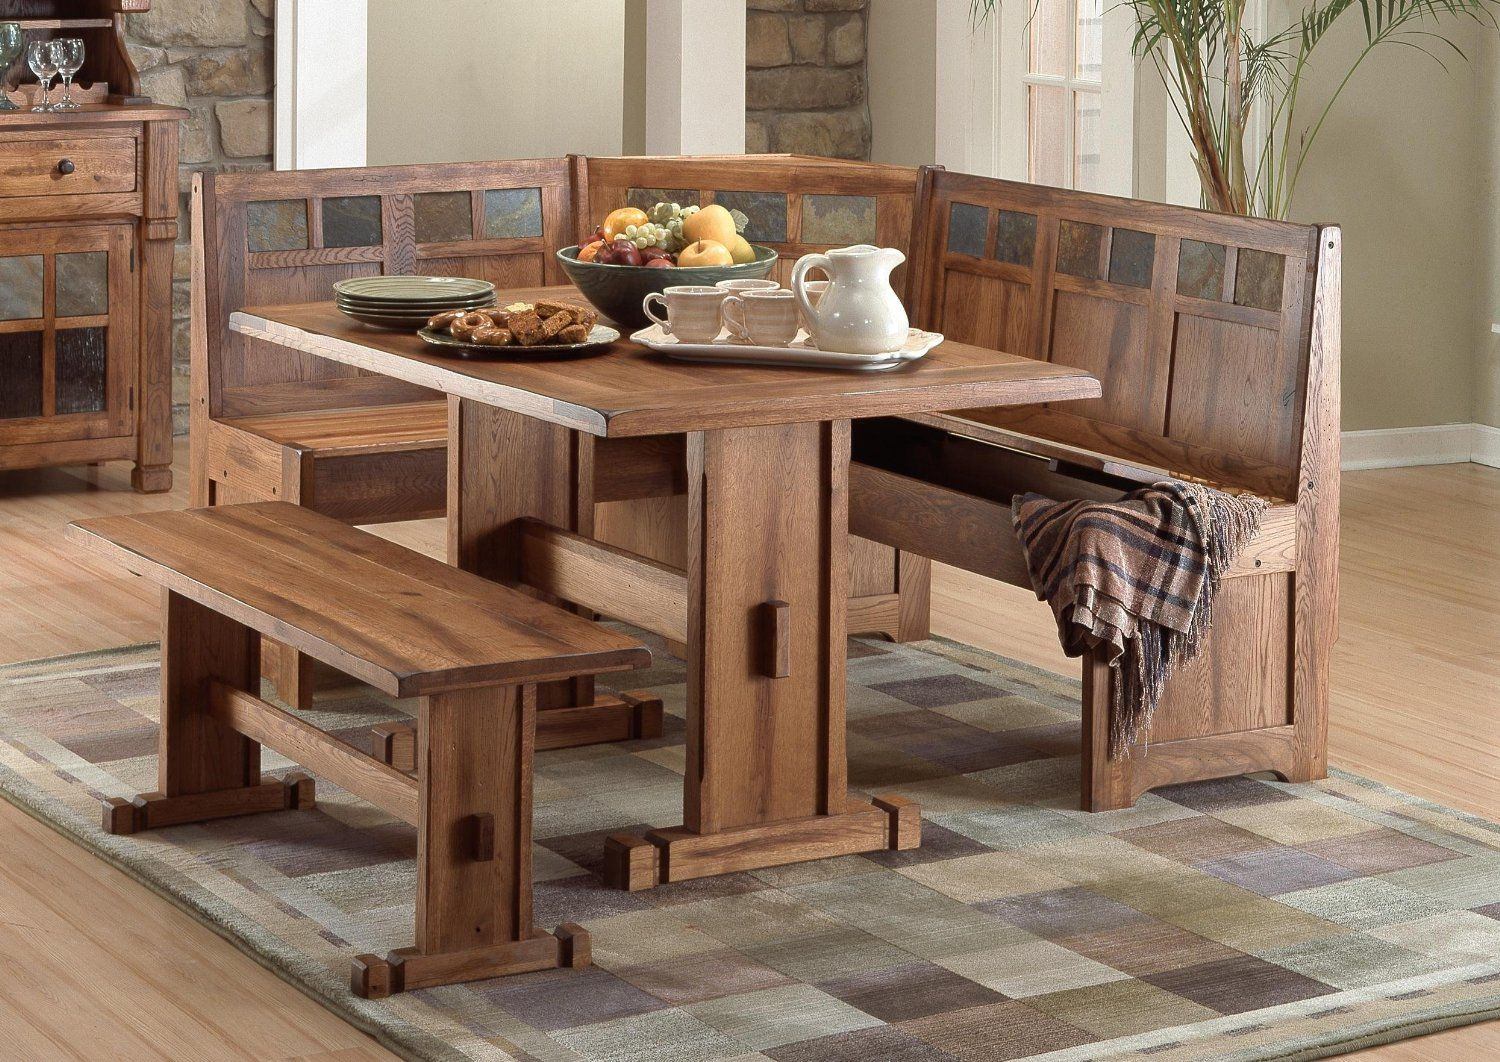 Kitchen Dining Table Wood Kitchen Table With Bench Seating Designs Ideas Dining Bench